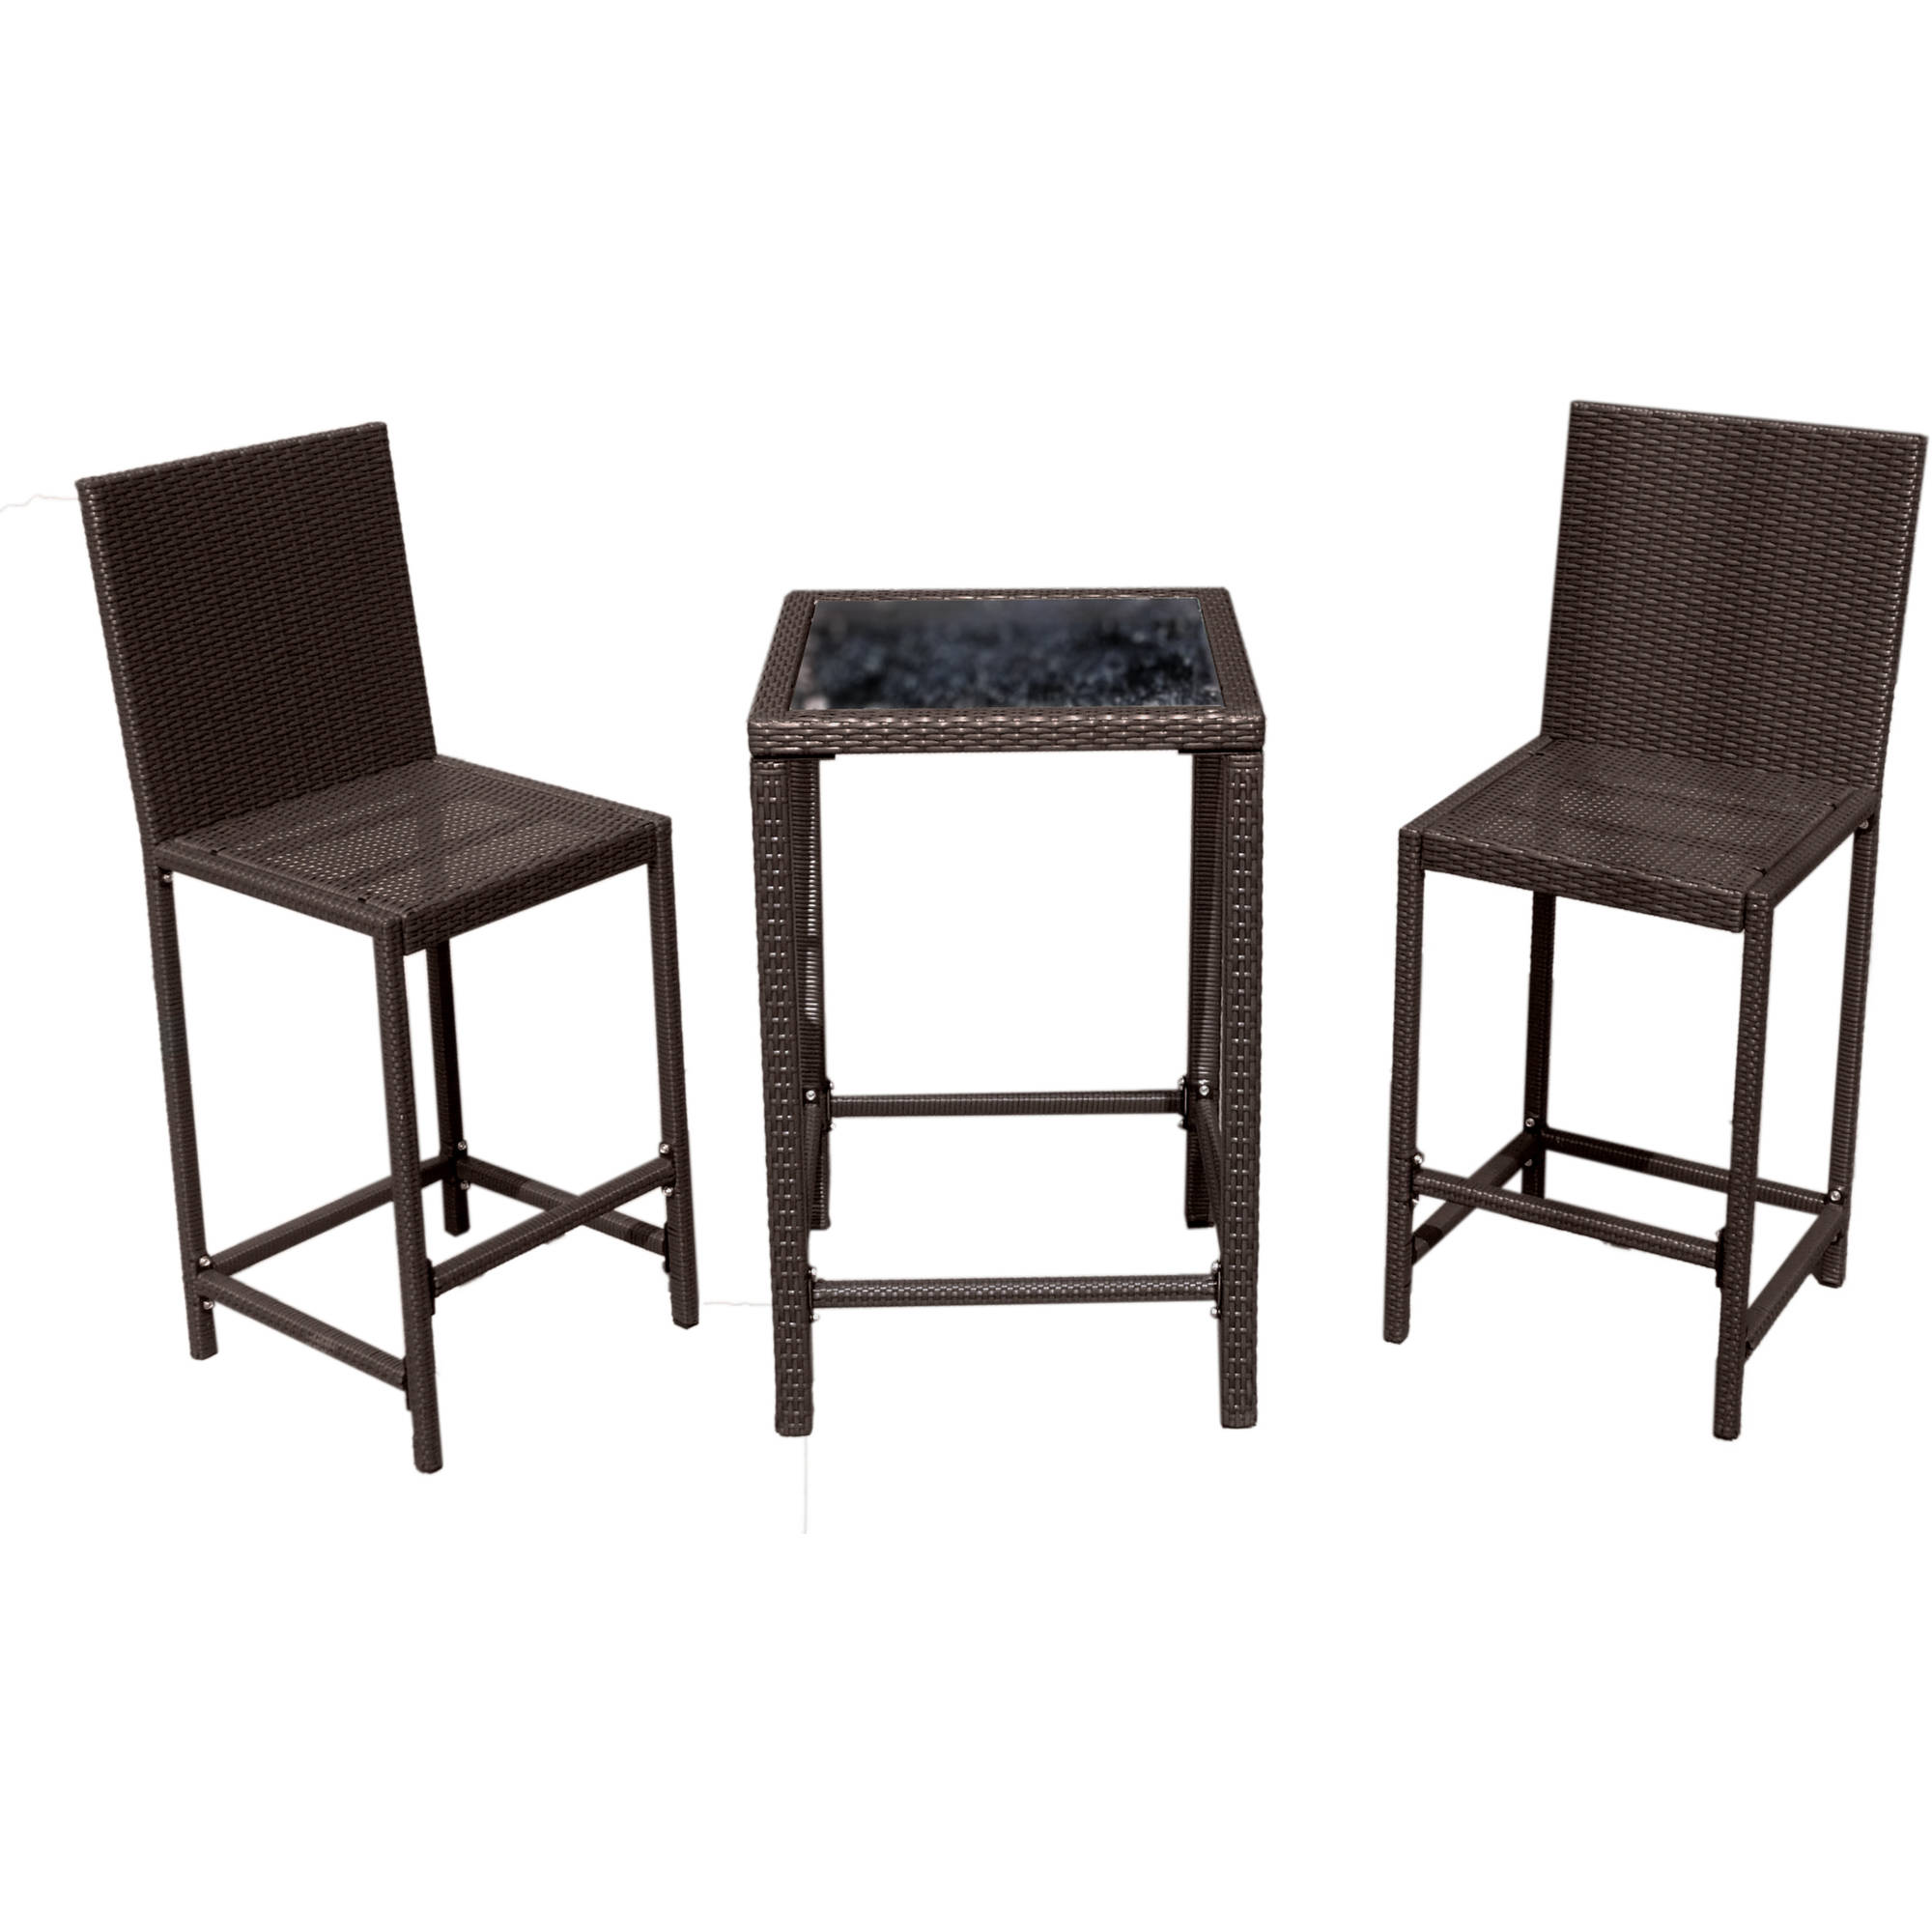 Hiland Bar Height Three-Piece Bistro Set, Mocha Wicker